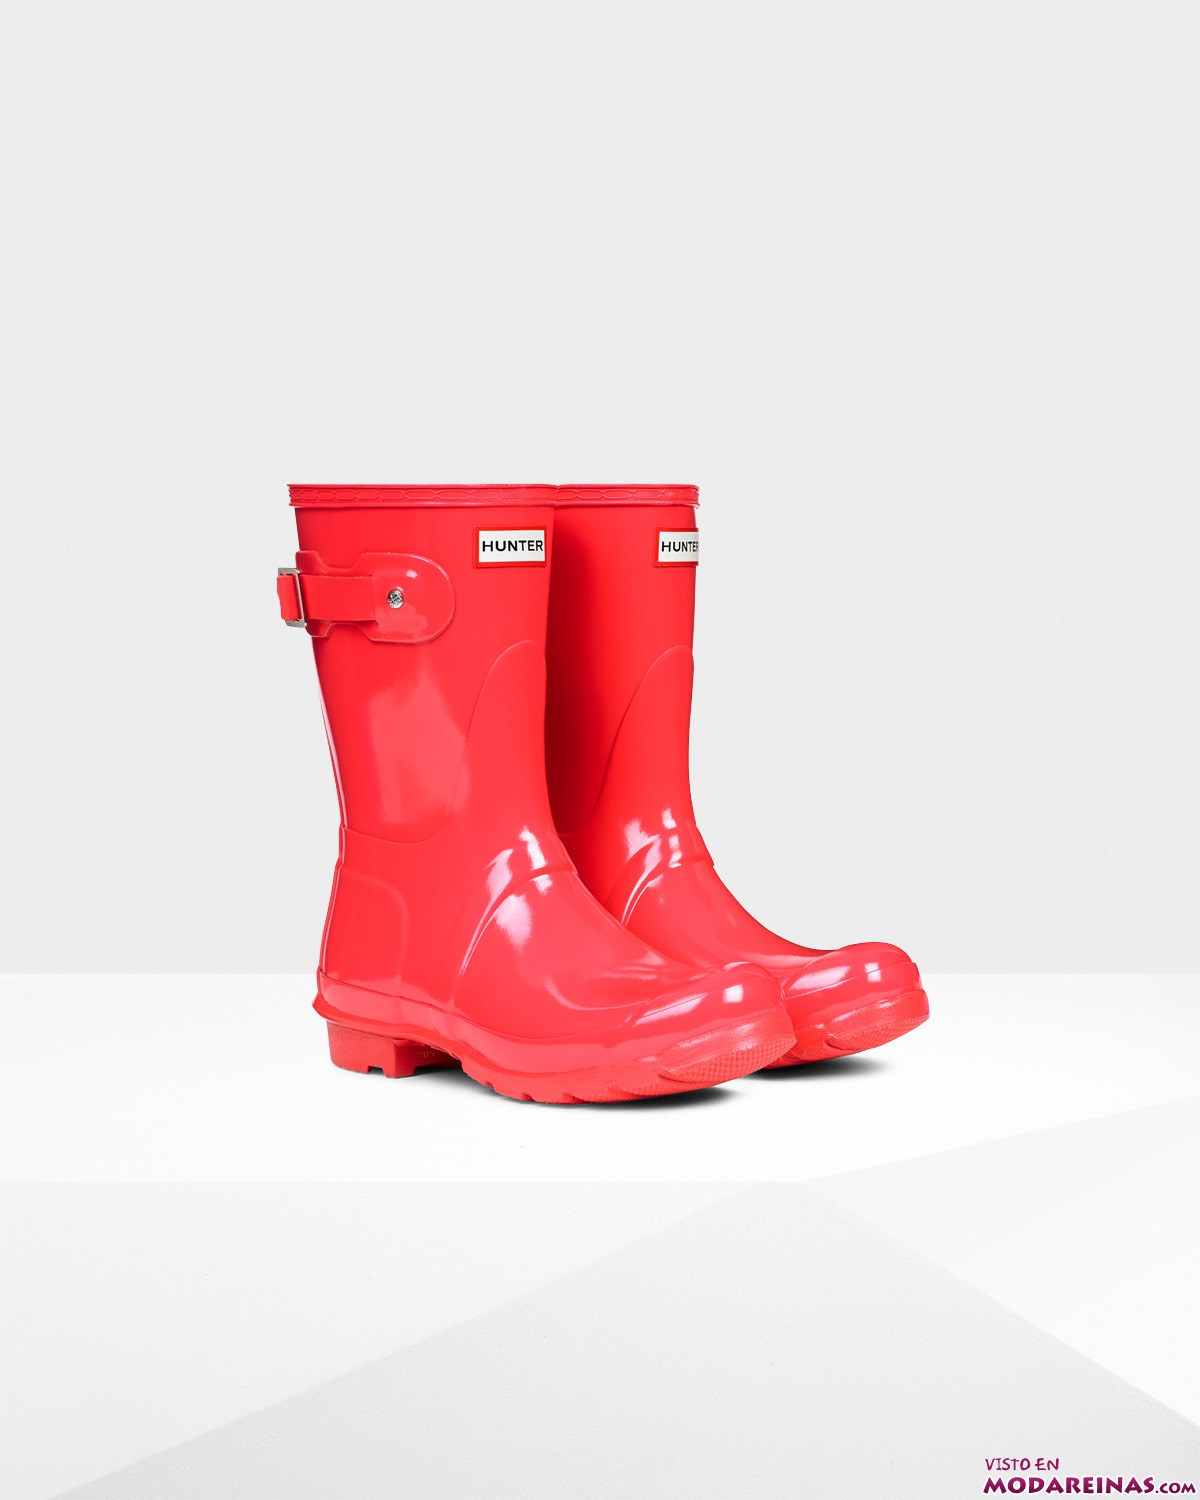 botas Hunter en color rojo